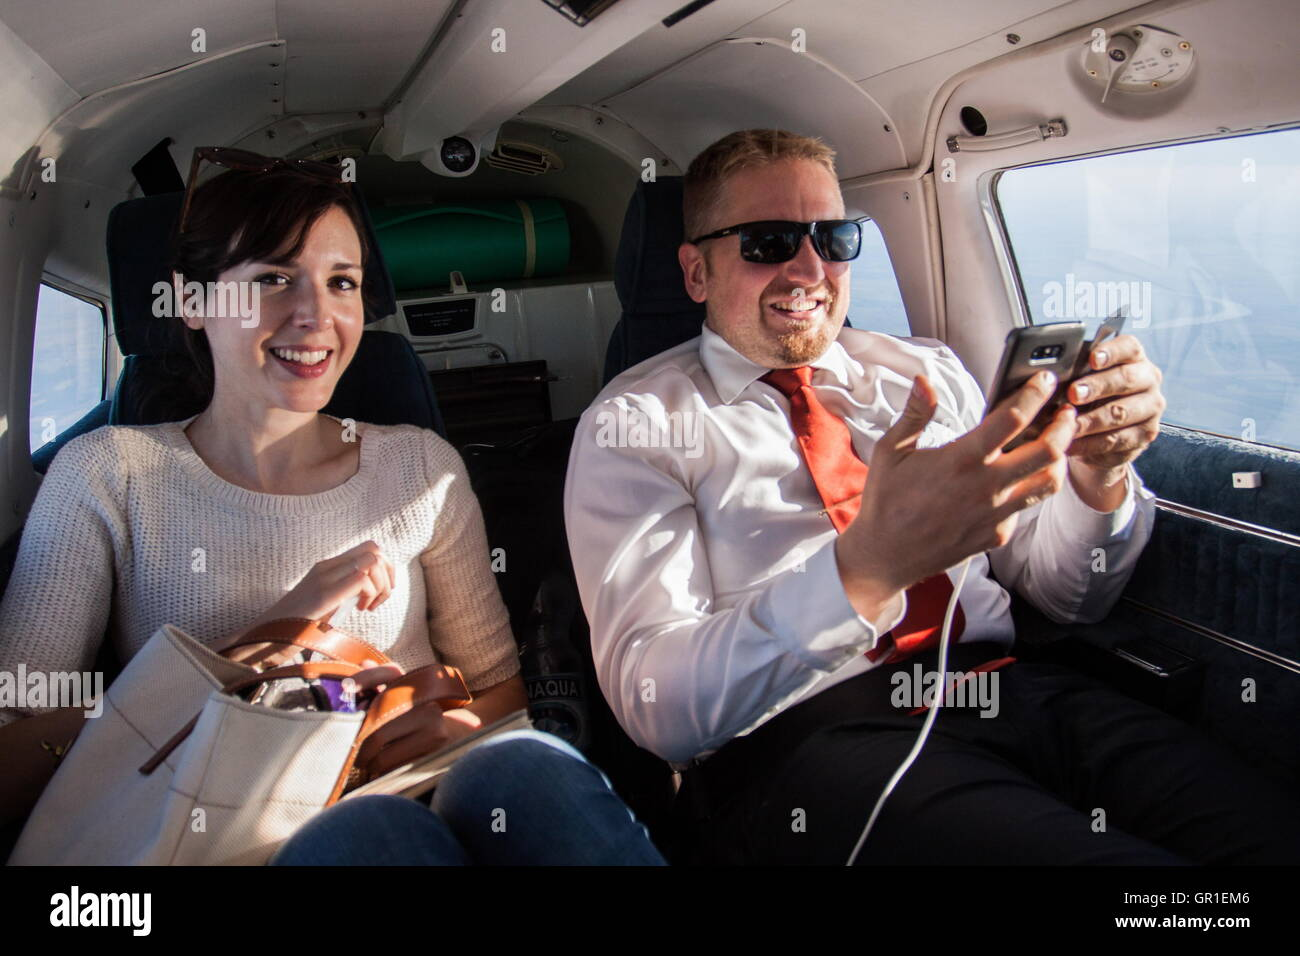 Aug 29, 2016 - Liberland - Journalist Morgan Childs and president of Liberland VIT JEDLICKA in a private plane. - Stock Image